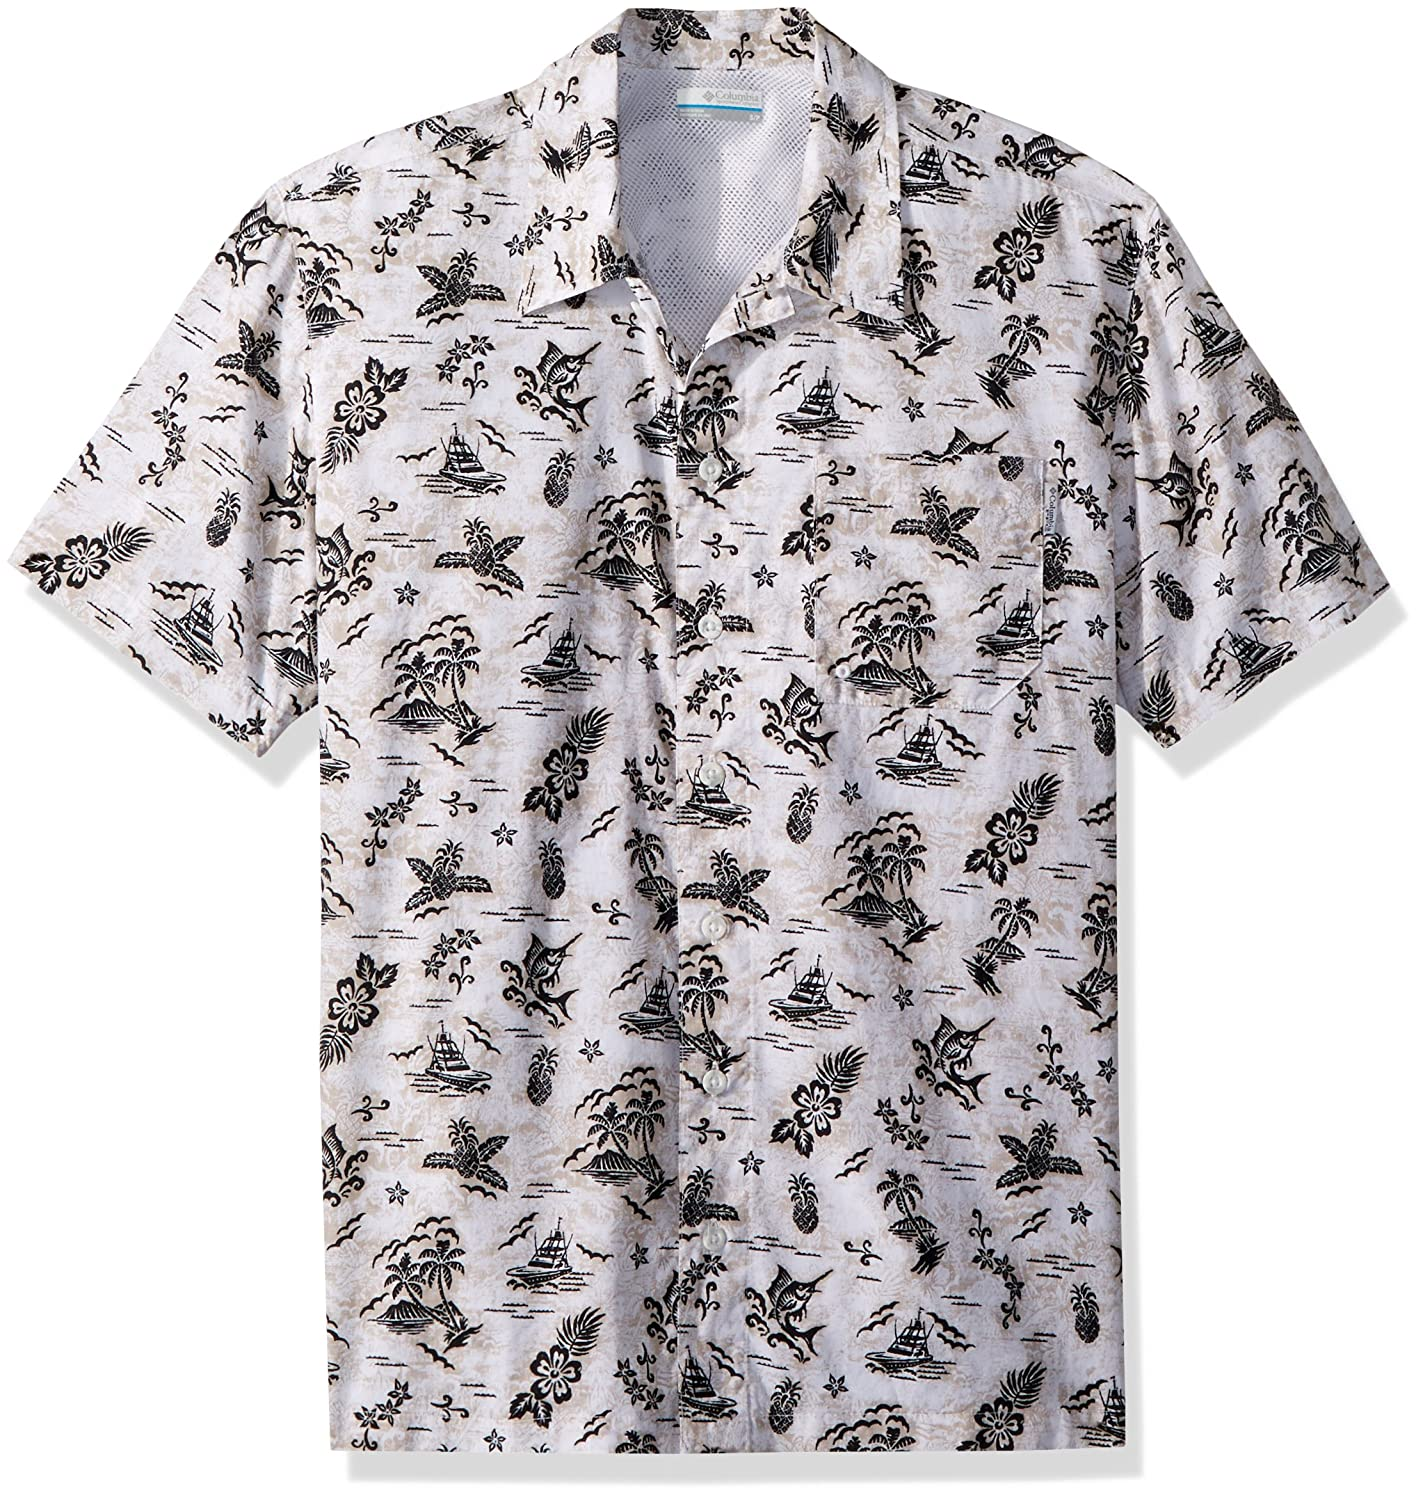 49a270f2 Amazon.com : Columbia Men's Trollers Best Short Sleeve Shirt : Clothing